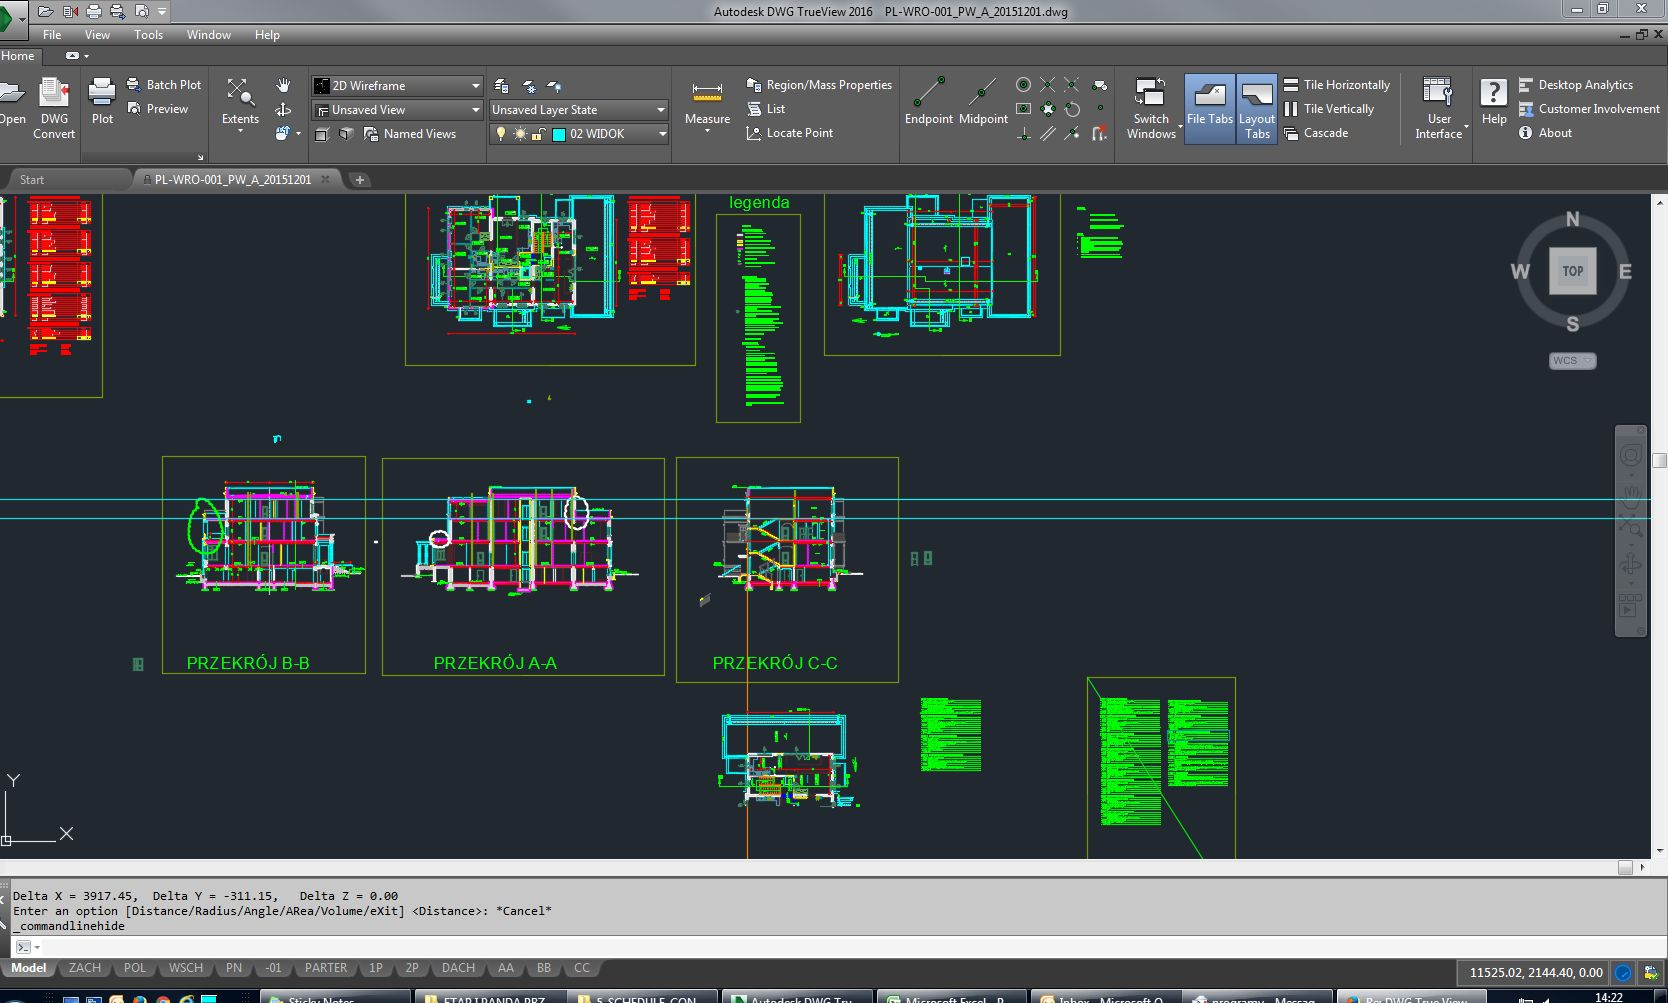 DWG True View 2016 - measurements on the screen - Autodesk